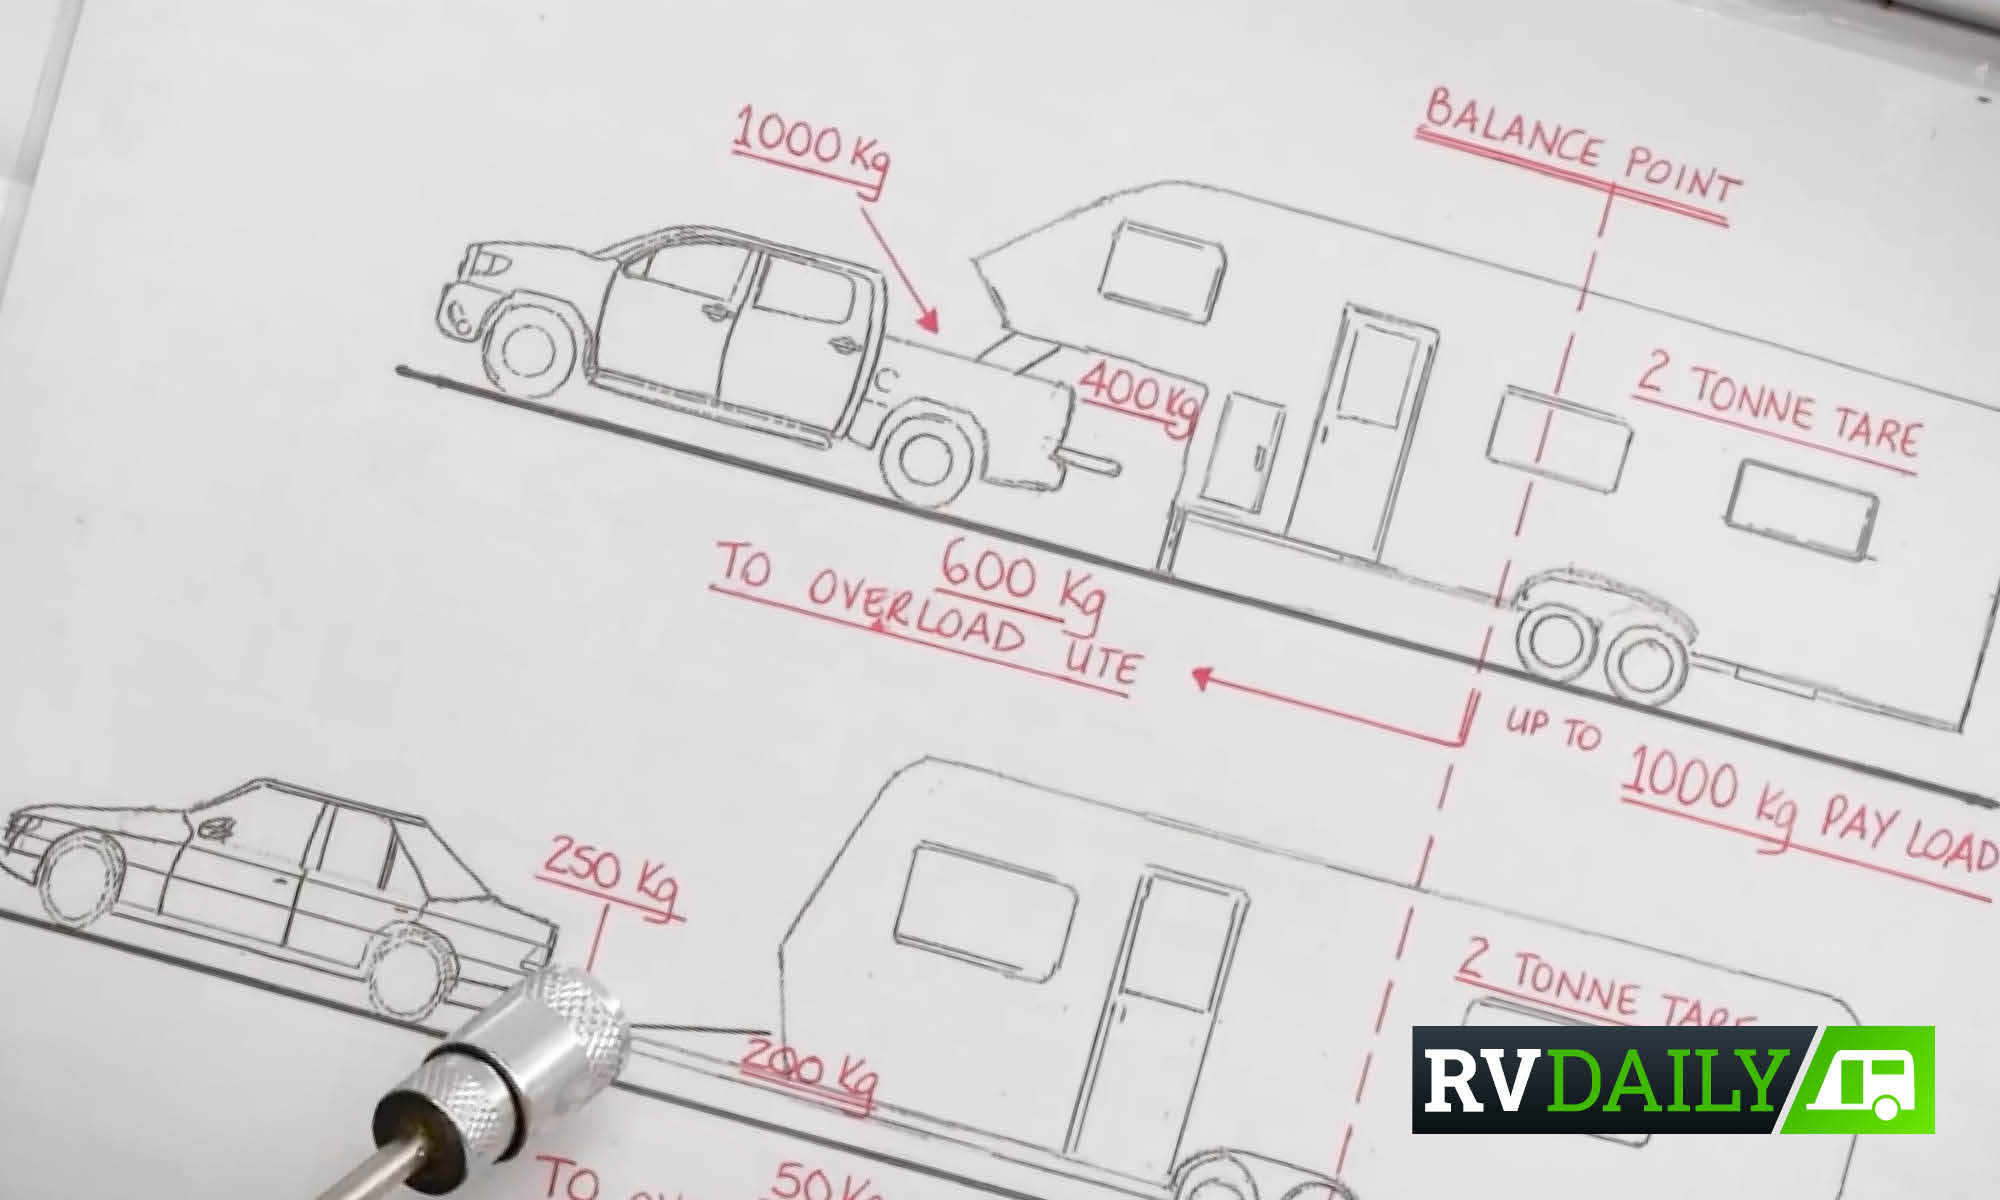 THE VIDEO CARAVAN & MOTORHOME PUBLISHED HOW THEY GOT IT ALL WRONG!